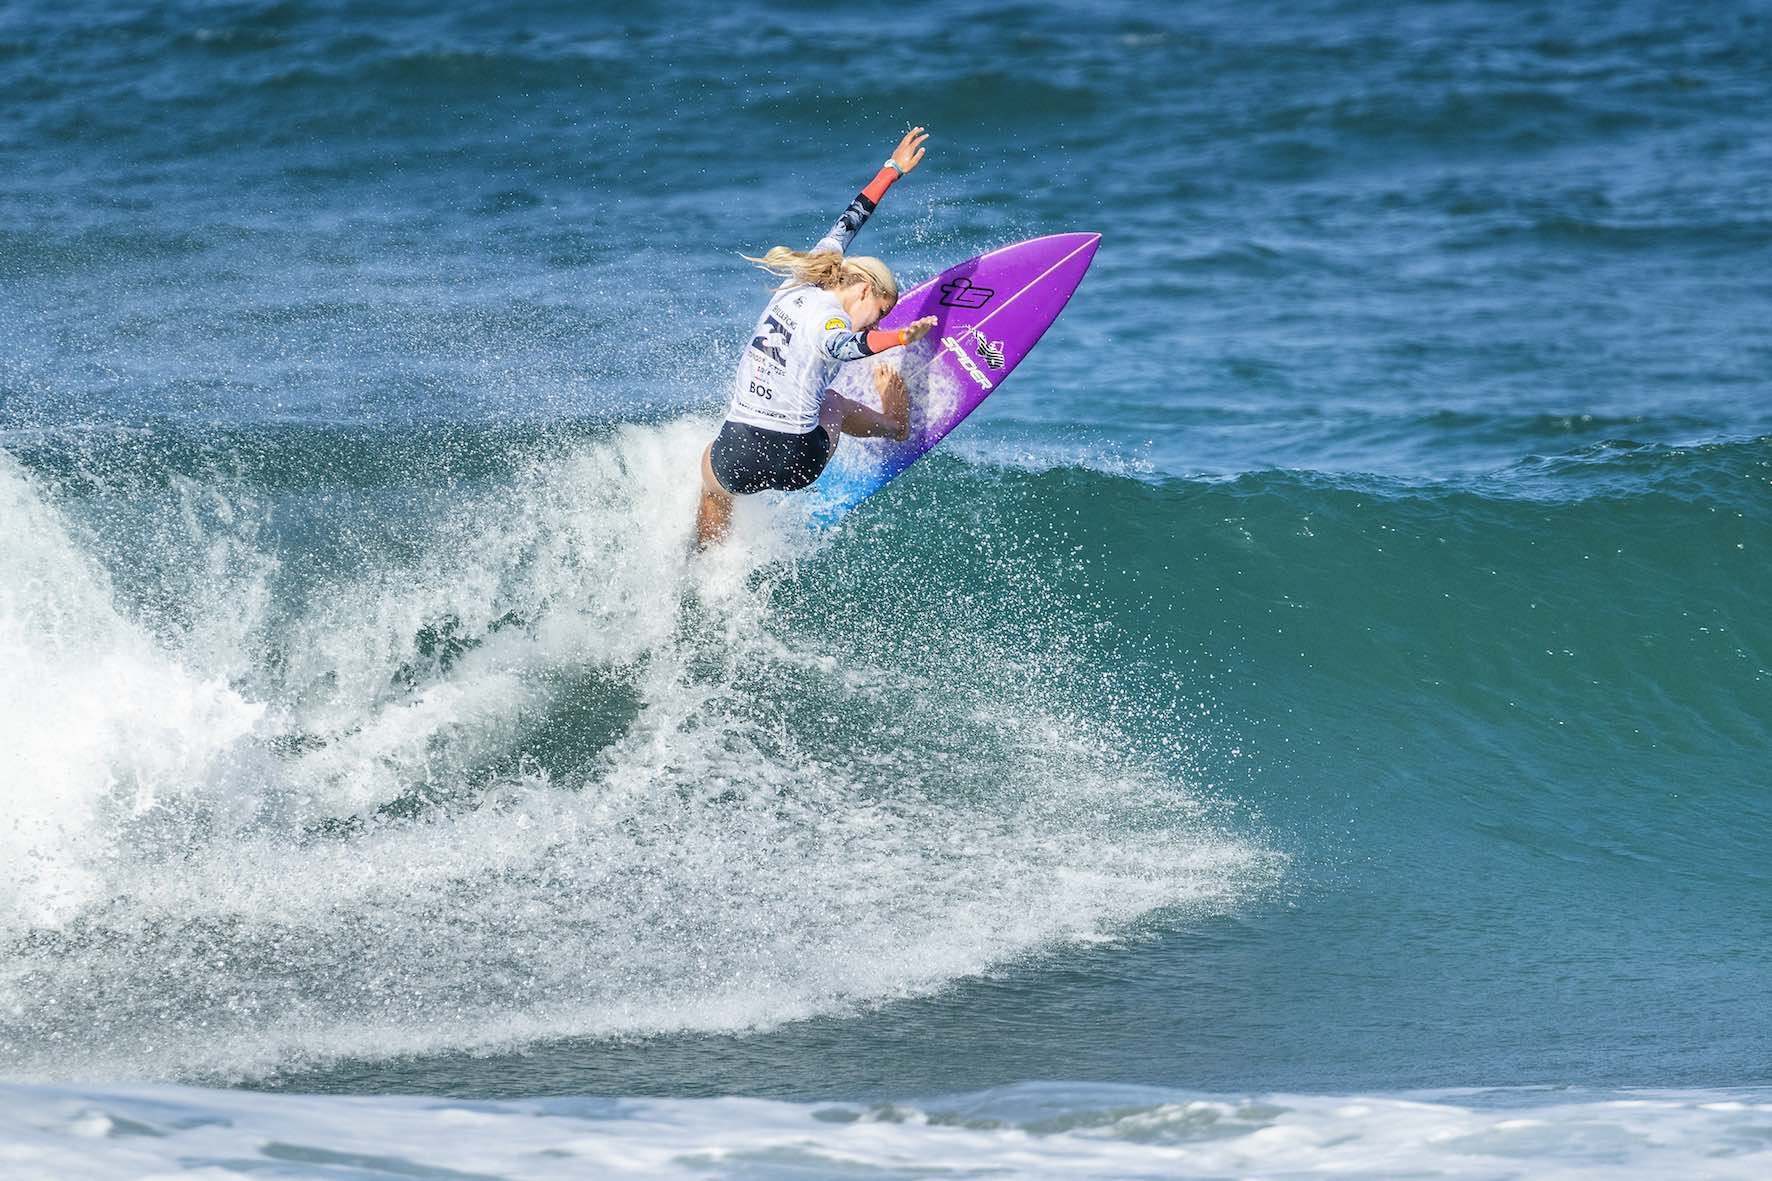 Zoe Steyn surfing her way to victory at the Bilabing Junior Series in Ballito